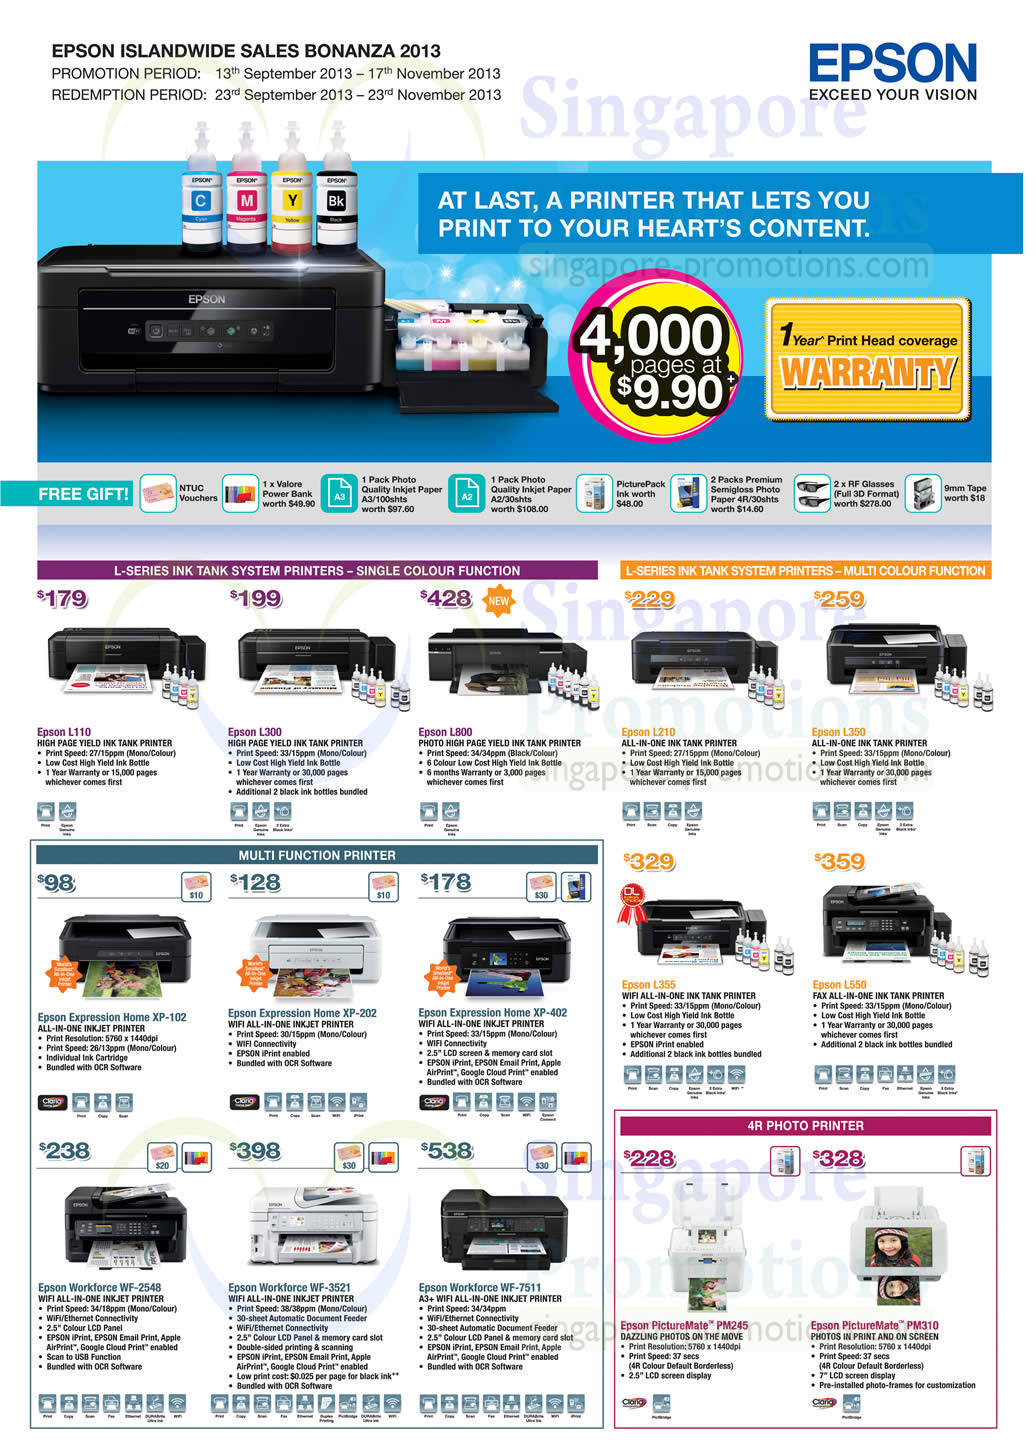 L Series Printers, Ink Tank, Multi Function, 4R Photo Printers, PictureMate listed are Epson XP-30 Printer, Epson T60 Printer, Epson T1100 Printer, Epson 1390 Printer, Epson WF-7011 Printer, Epson V33 Scanner, Epson V370 Scanner, Epson V600 Scanner, Epson V700 Scanner, Epson M1400 Printer, Epson C1700 Printer, Epson MX14 Printer, Epson MX14NF Printer and Epson CX17NF PrinterAlso listed are Epson R2000 Printer, Epson R3000 Printer, Epson 3885 Printer, Epson EB-S12 Projector, Epson EB-X12 Projector, Epson EB-W12 Projector, Epson EB-1751 Projector, Epson LW-300 Labeller, Epson LW-400 Labeller, Epson EB-1761 Projector, Epson EB-1776W Projector and Epson TW550 Projector